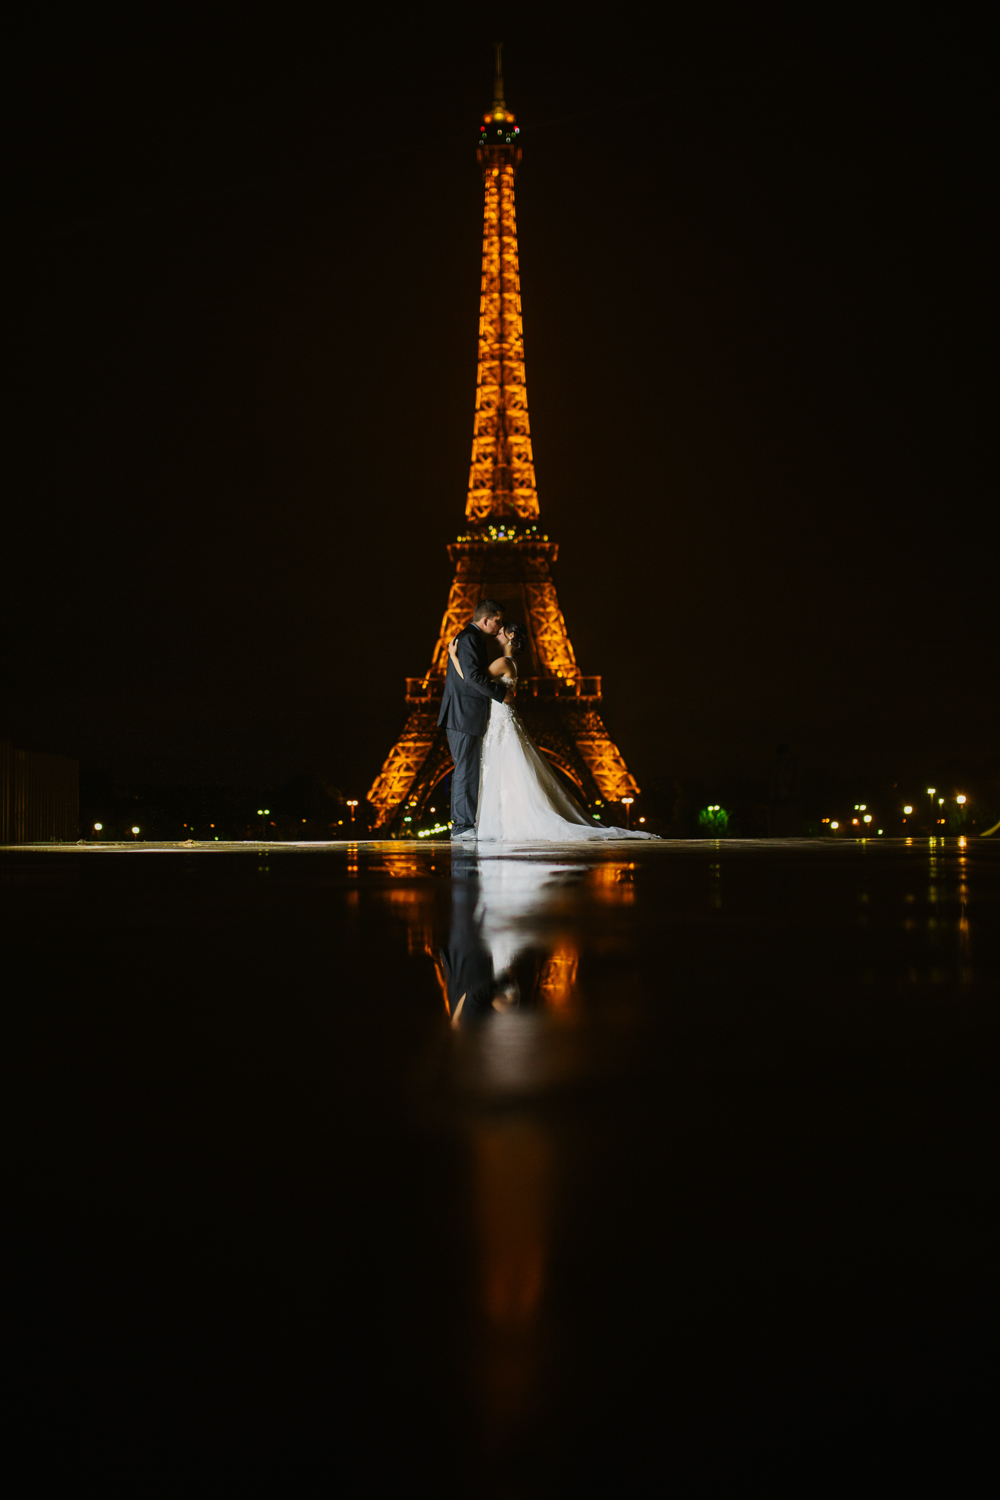 Chico-Wedding-Photography-Ranalla-Photo-Films-Wedding-Video-Wedding-Photographer-Destination-wedding-photographer-venice-wedding-paris-wedding-paris-night-eiffel-tower-18.jpg